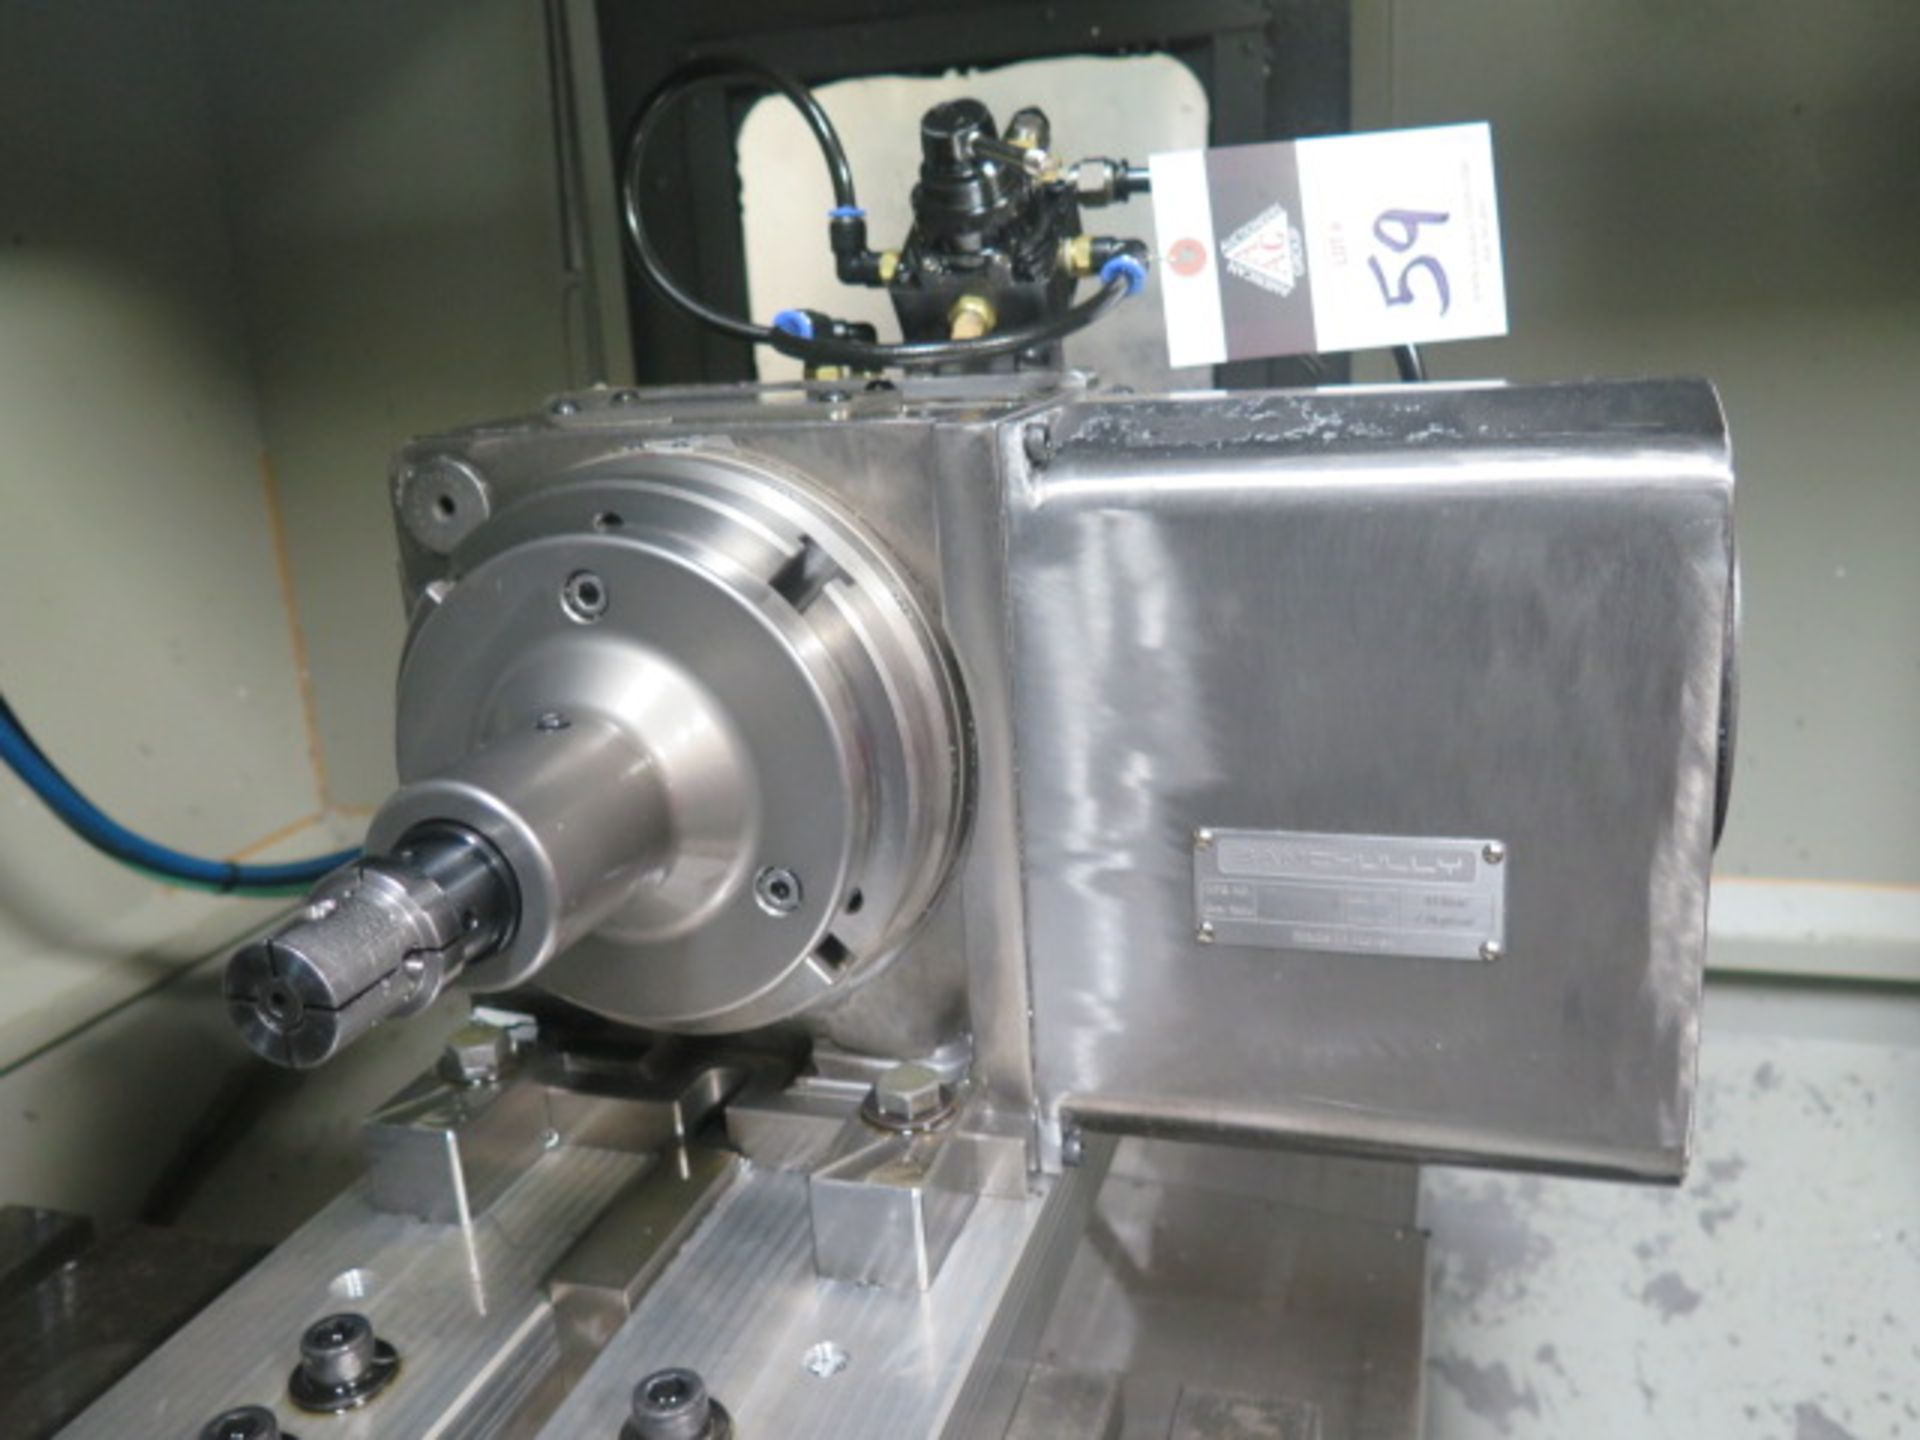 """Samchully 4th Axis 7"""" Rotary Head w/ 5C Pneumatic Collet Closer (SOLD AS-IS - NO WARRANTY) - Image 2 of 8"""